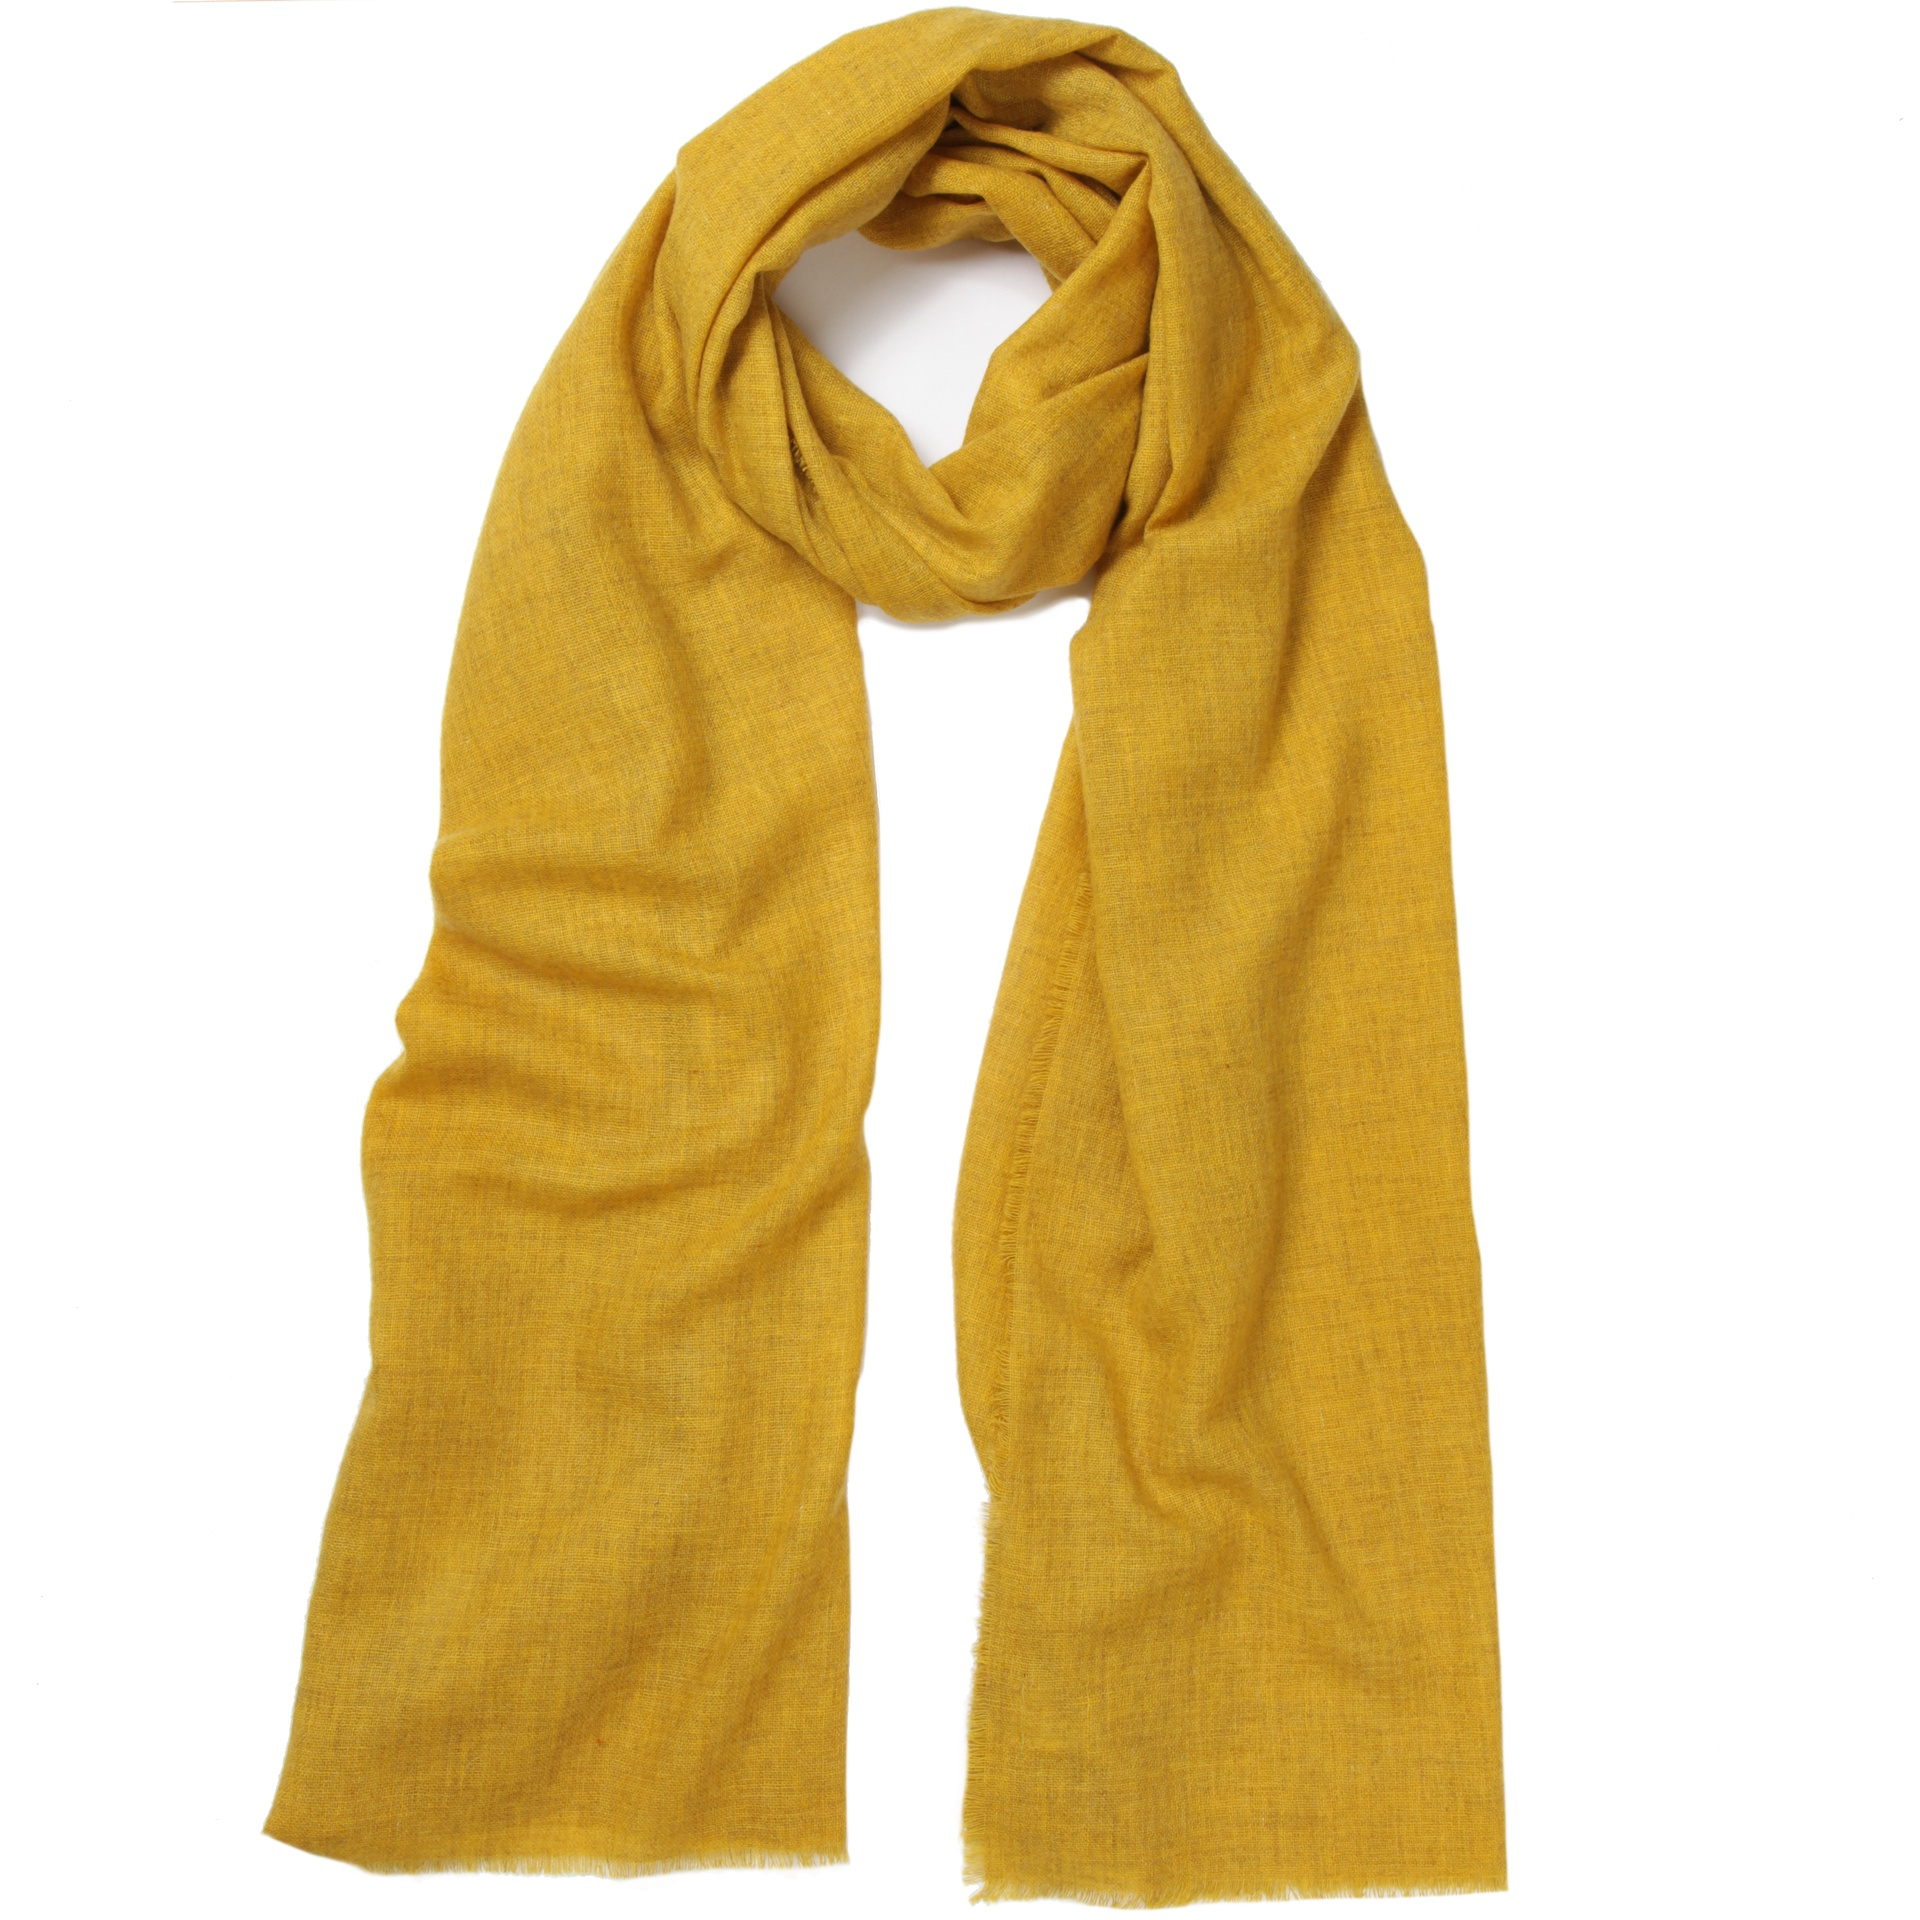 75a61e37c4bb1 men's ochre cashmere scarf - Cleverly Wrapped